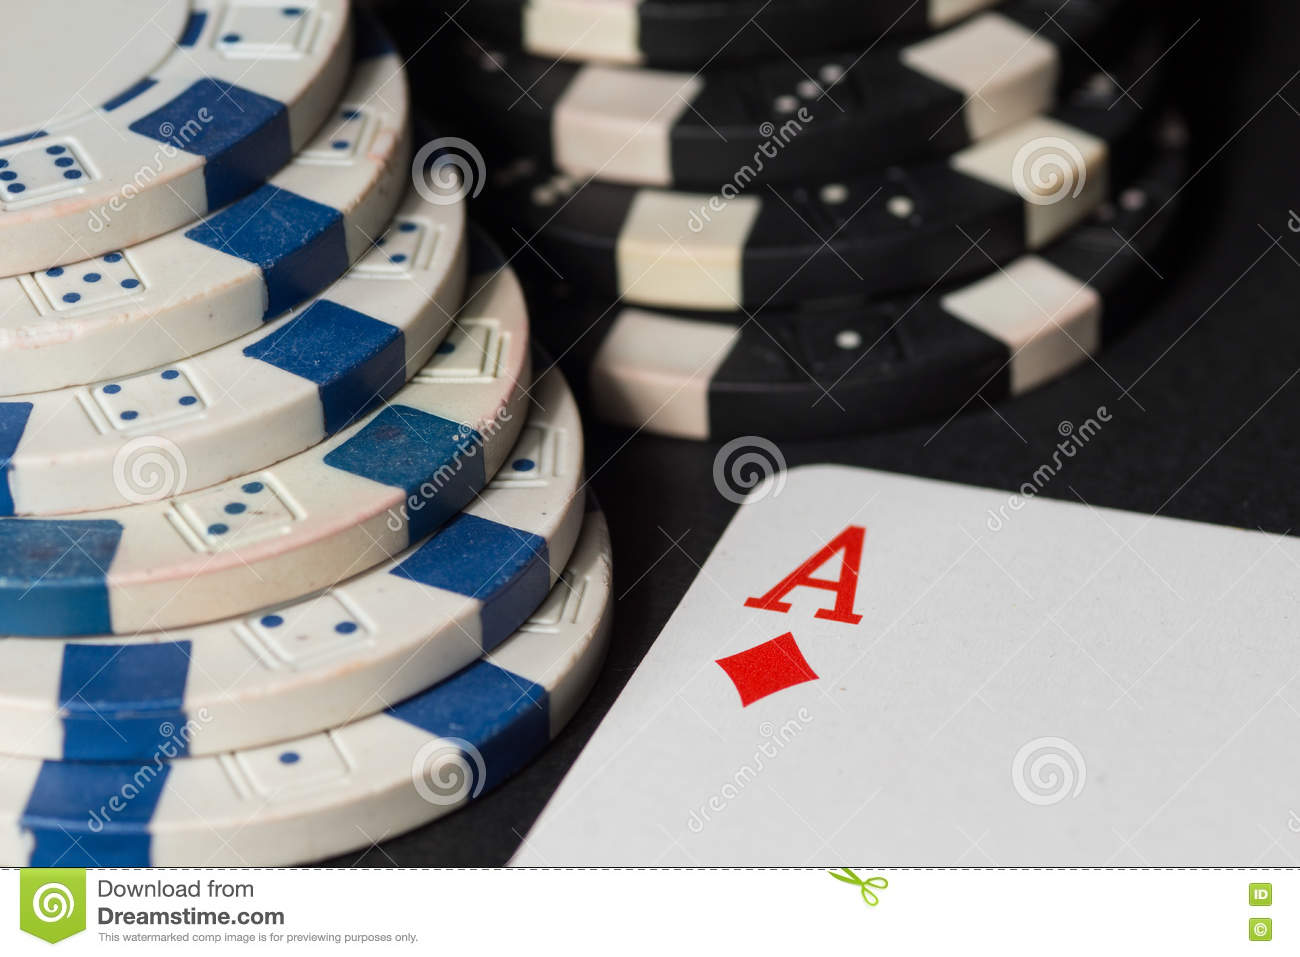 Poker chips and cards. High resolution image.